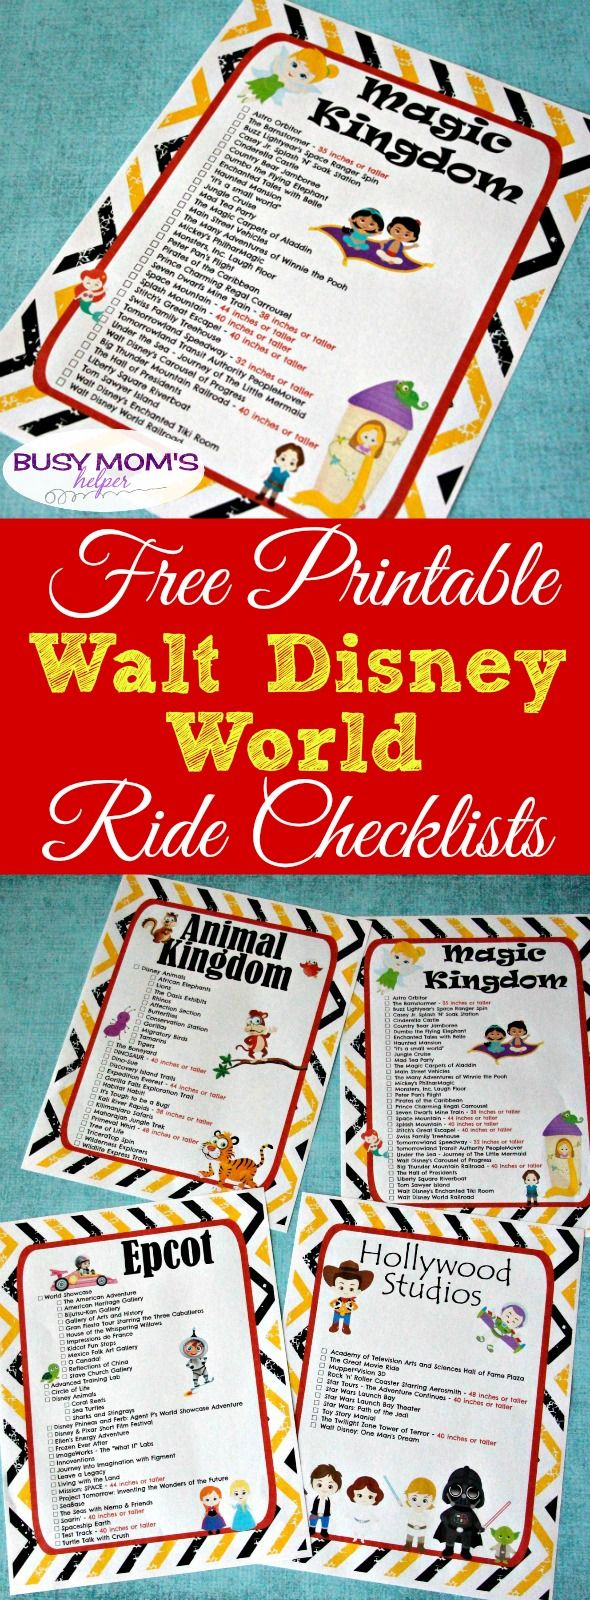 Free Printable Walt Disney World Ride Checklists | Walt